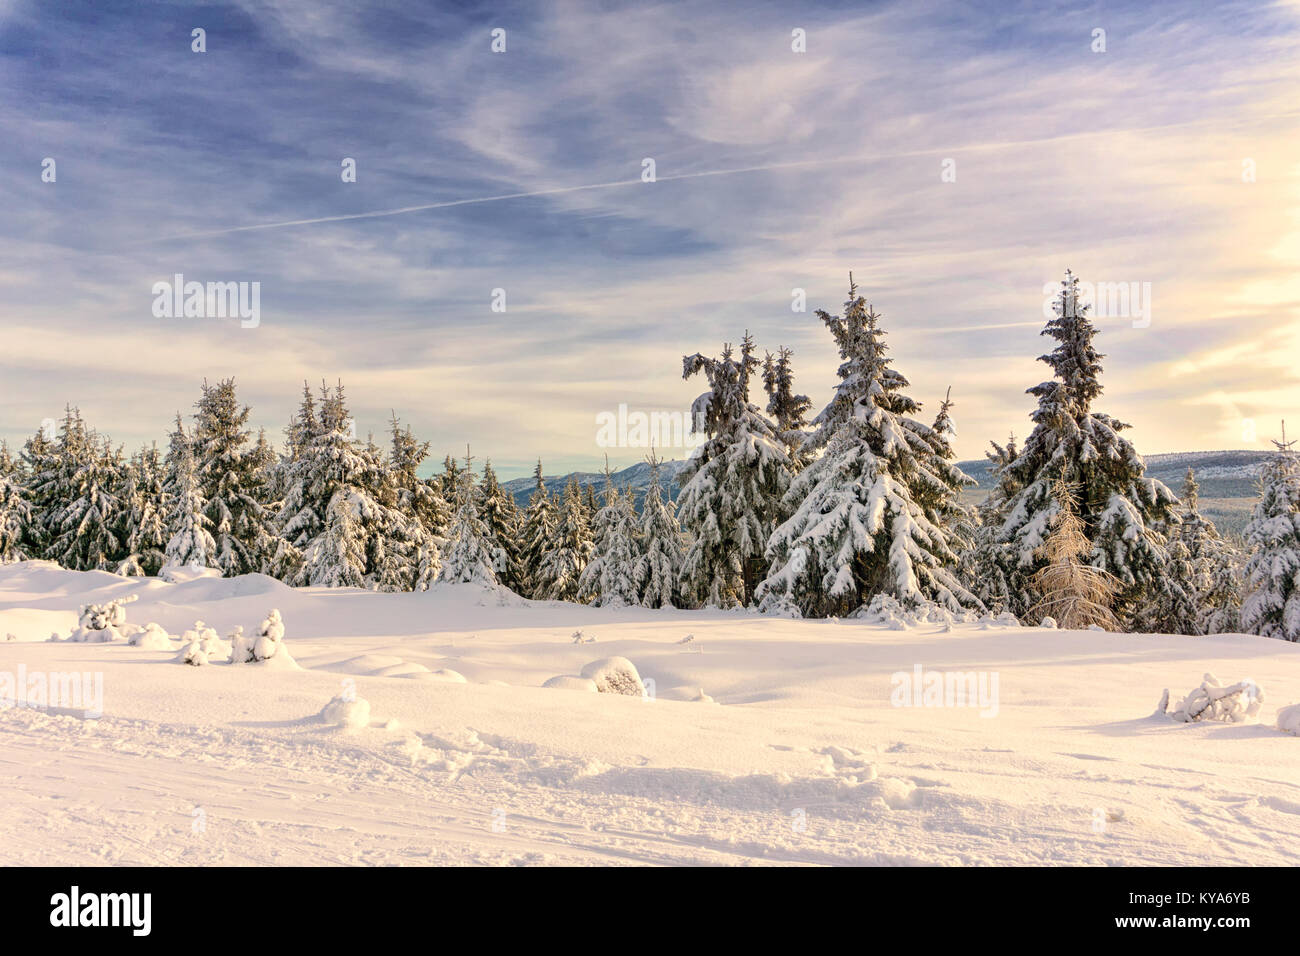 Mountain winter landscape, trees in mountains covered with hoarfrost and snow illuminated by the sun at late afternoon. - Stock Image